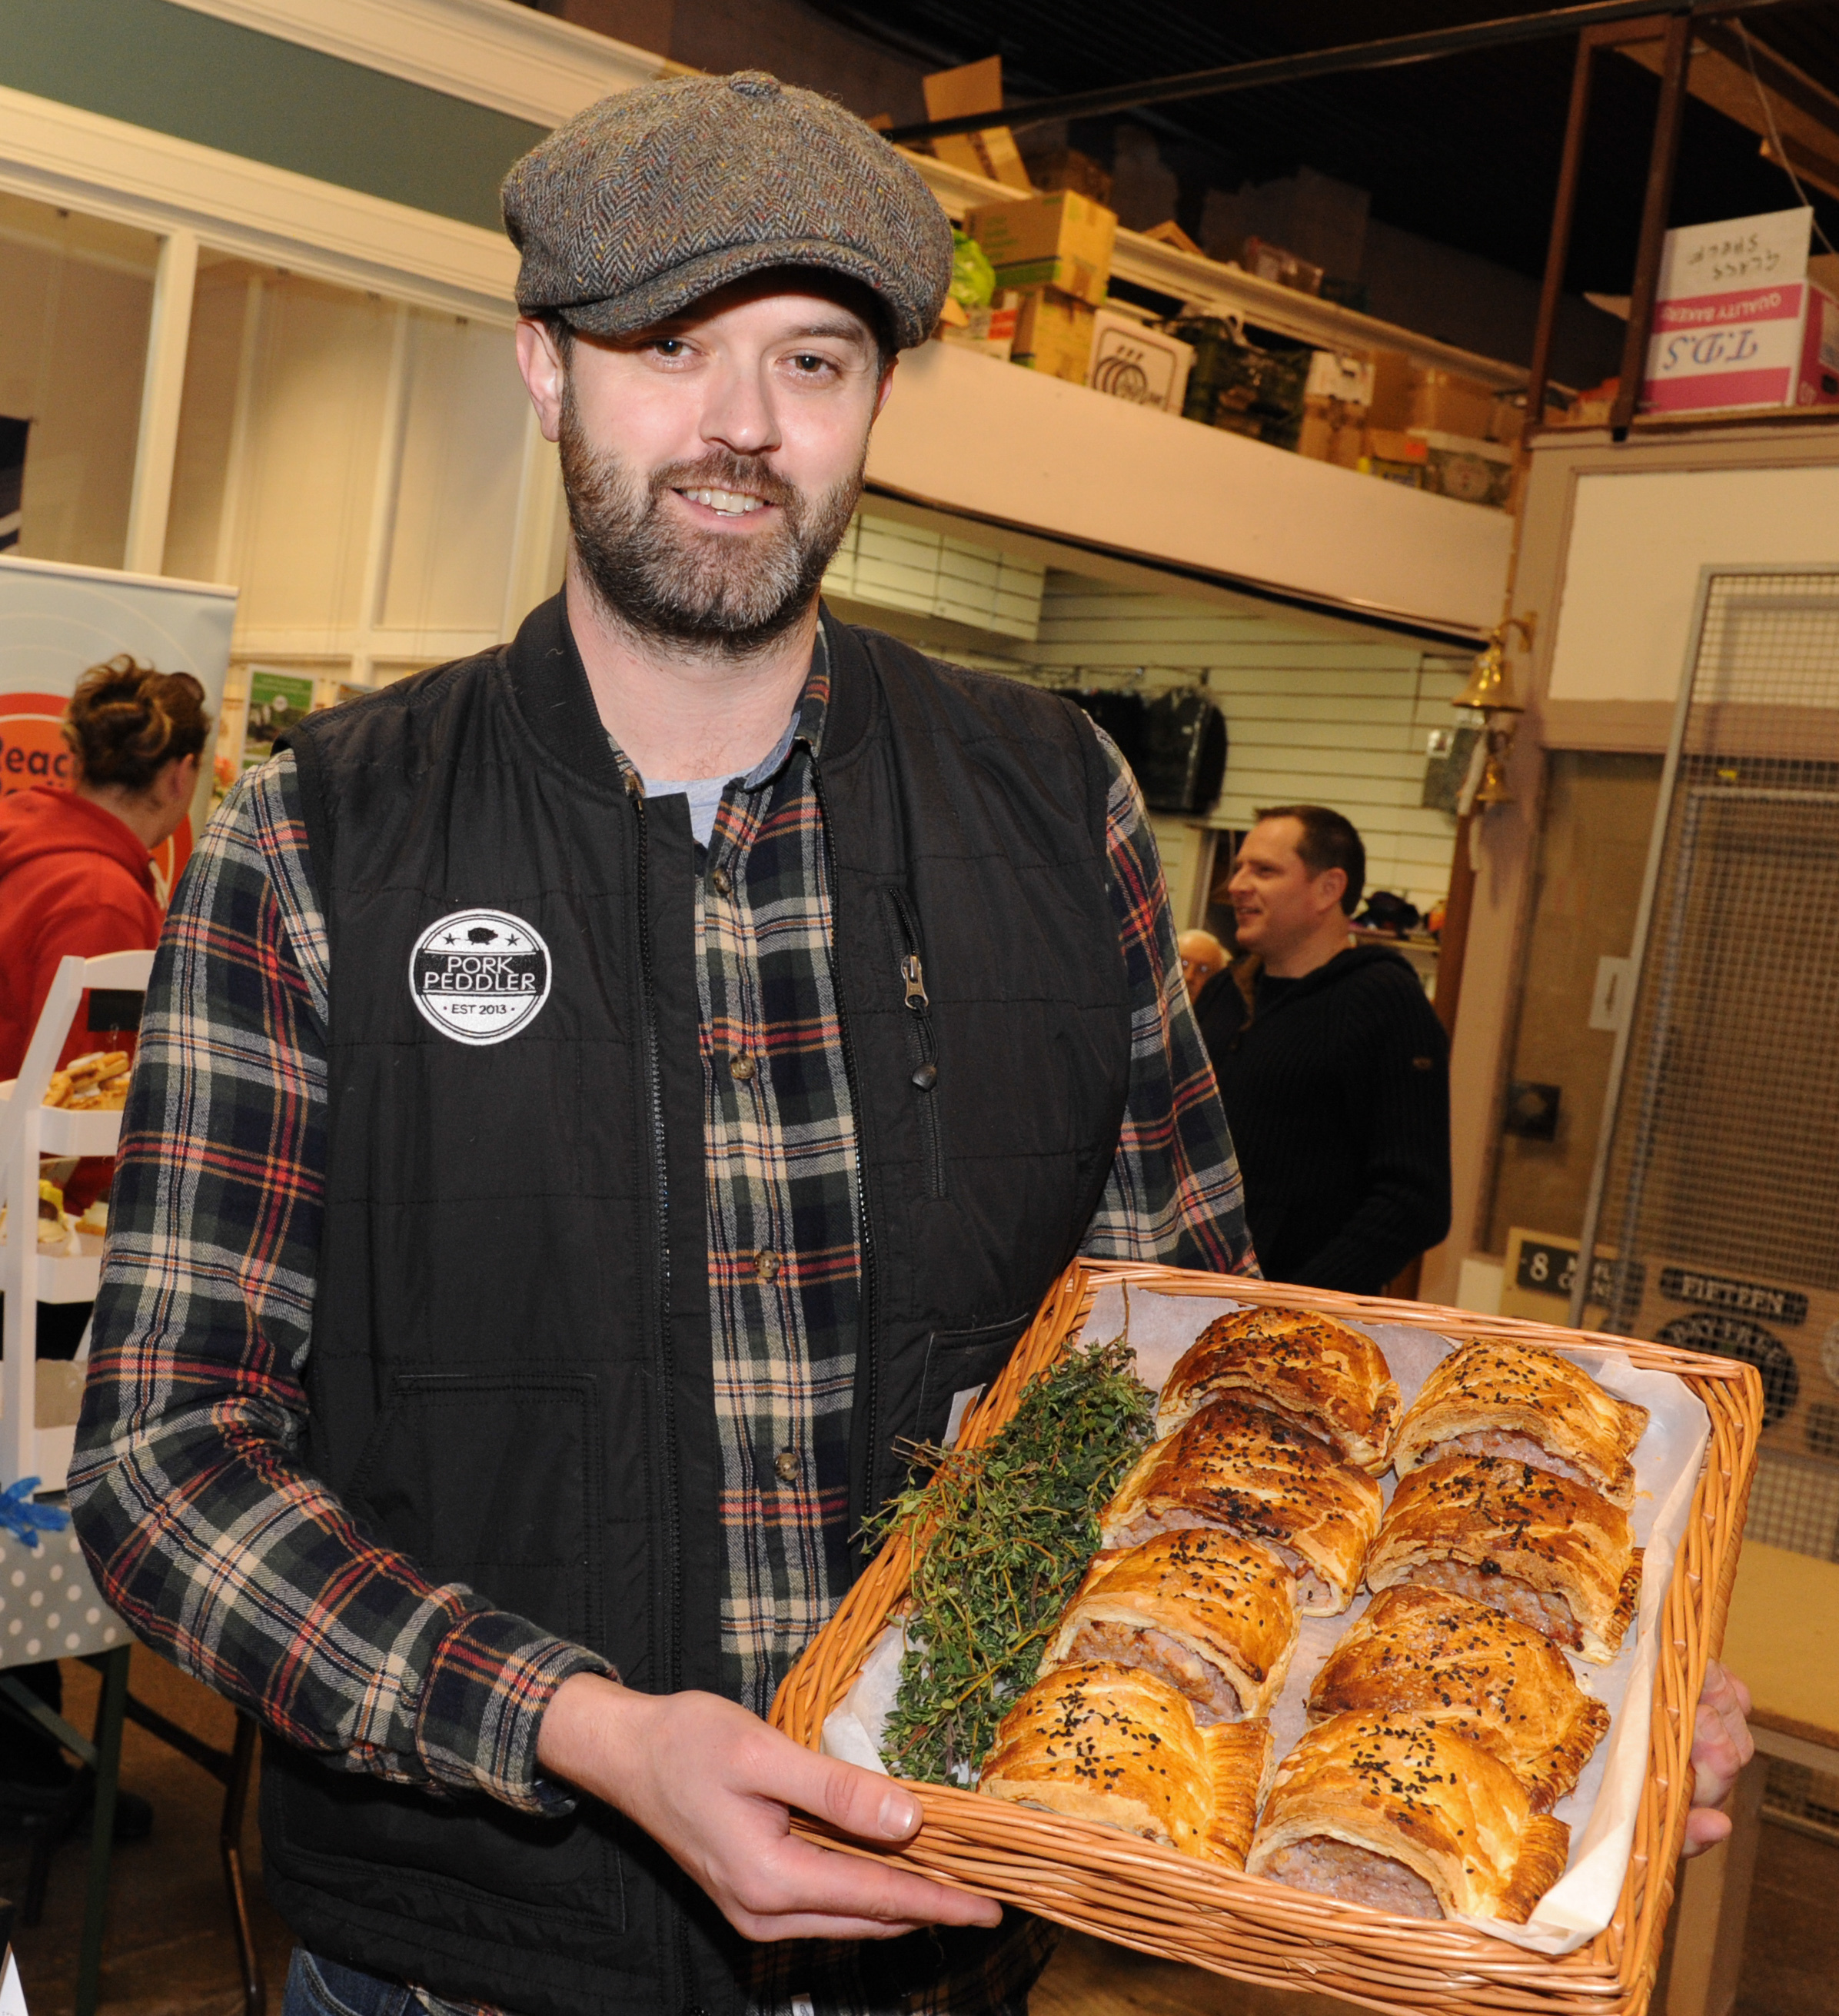 Andy Gynn from Pork Peddler with some sausage rolls ran a pop-up stall at the Butter Market earlier this year